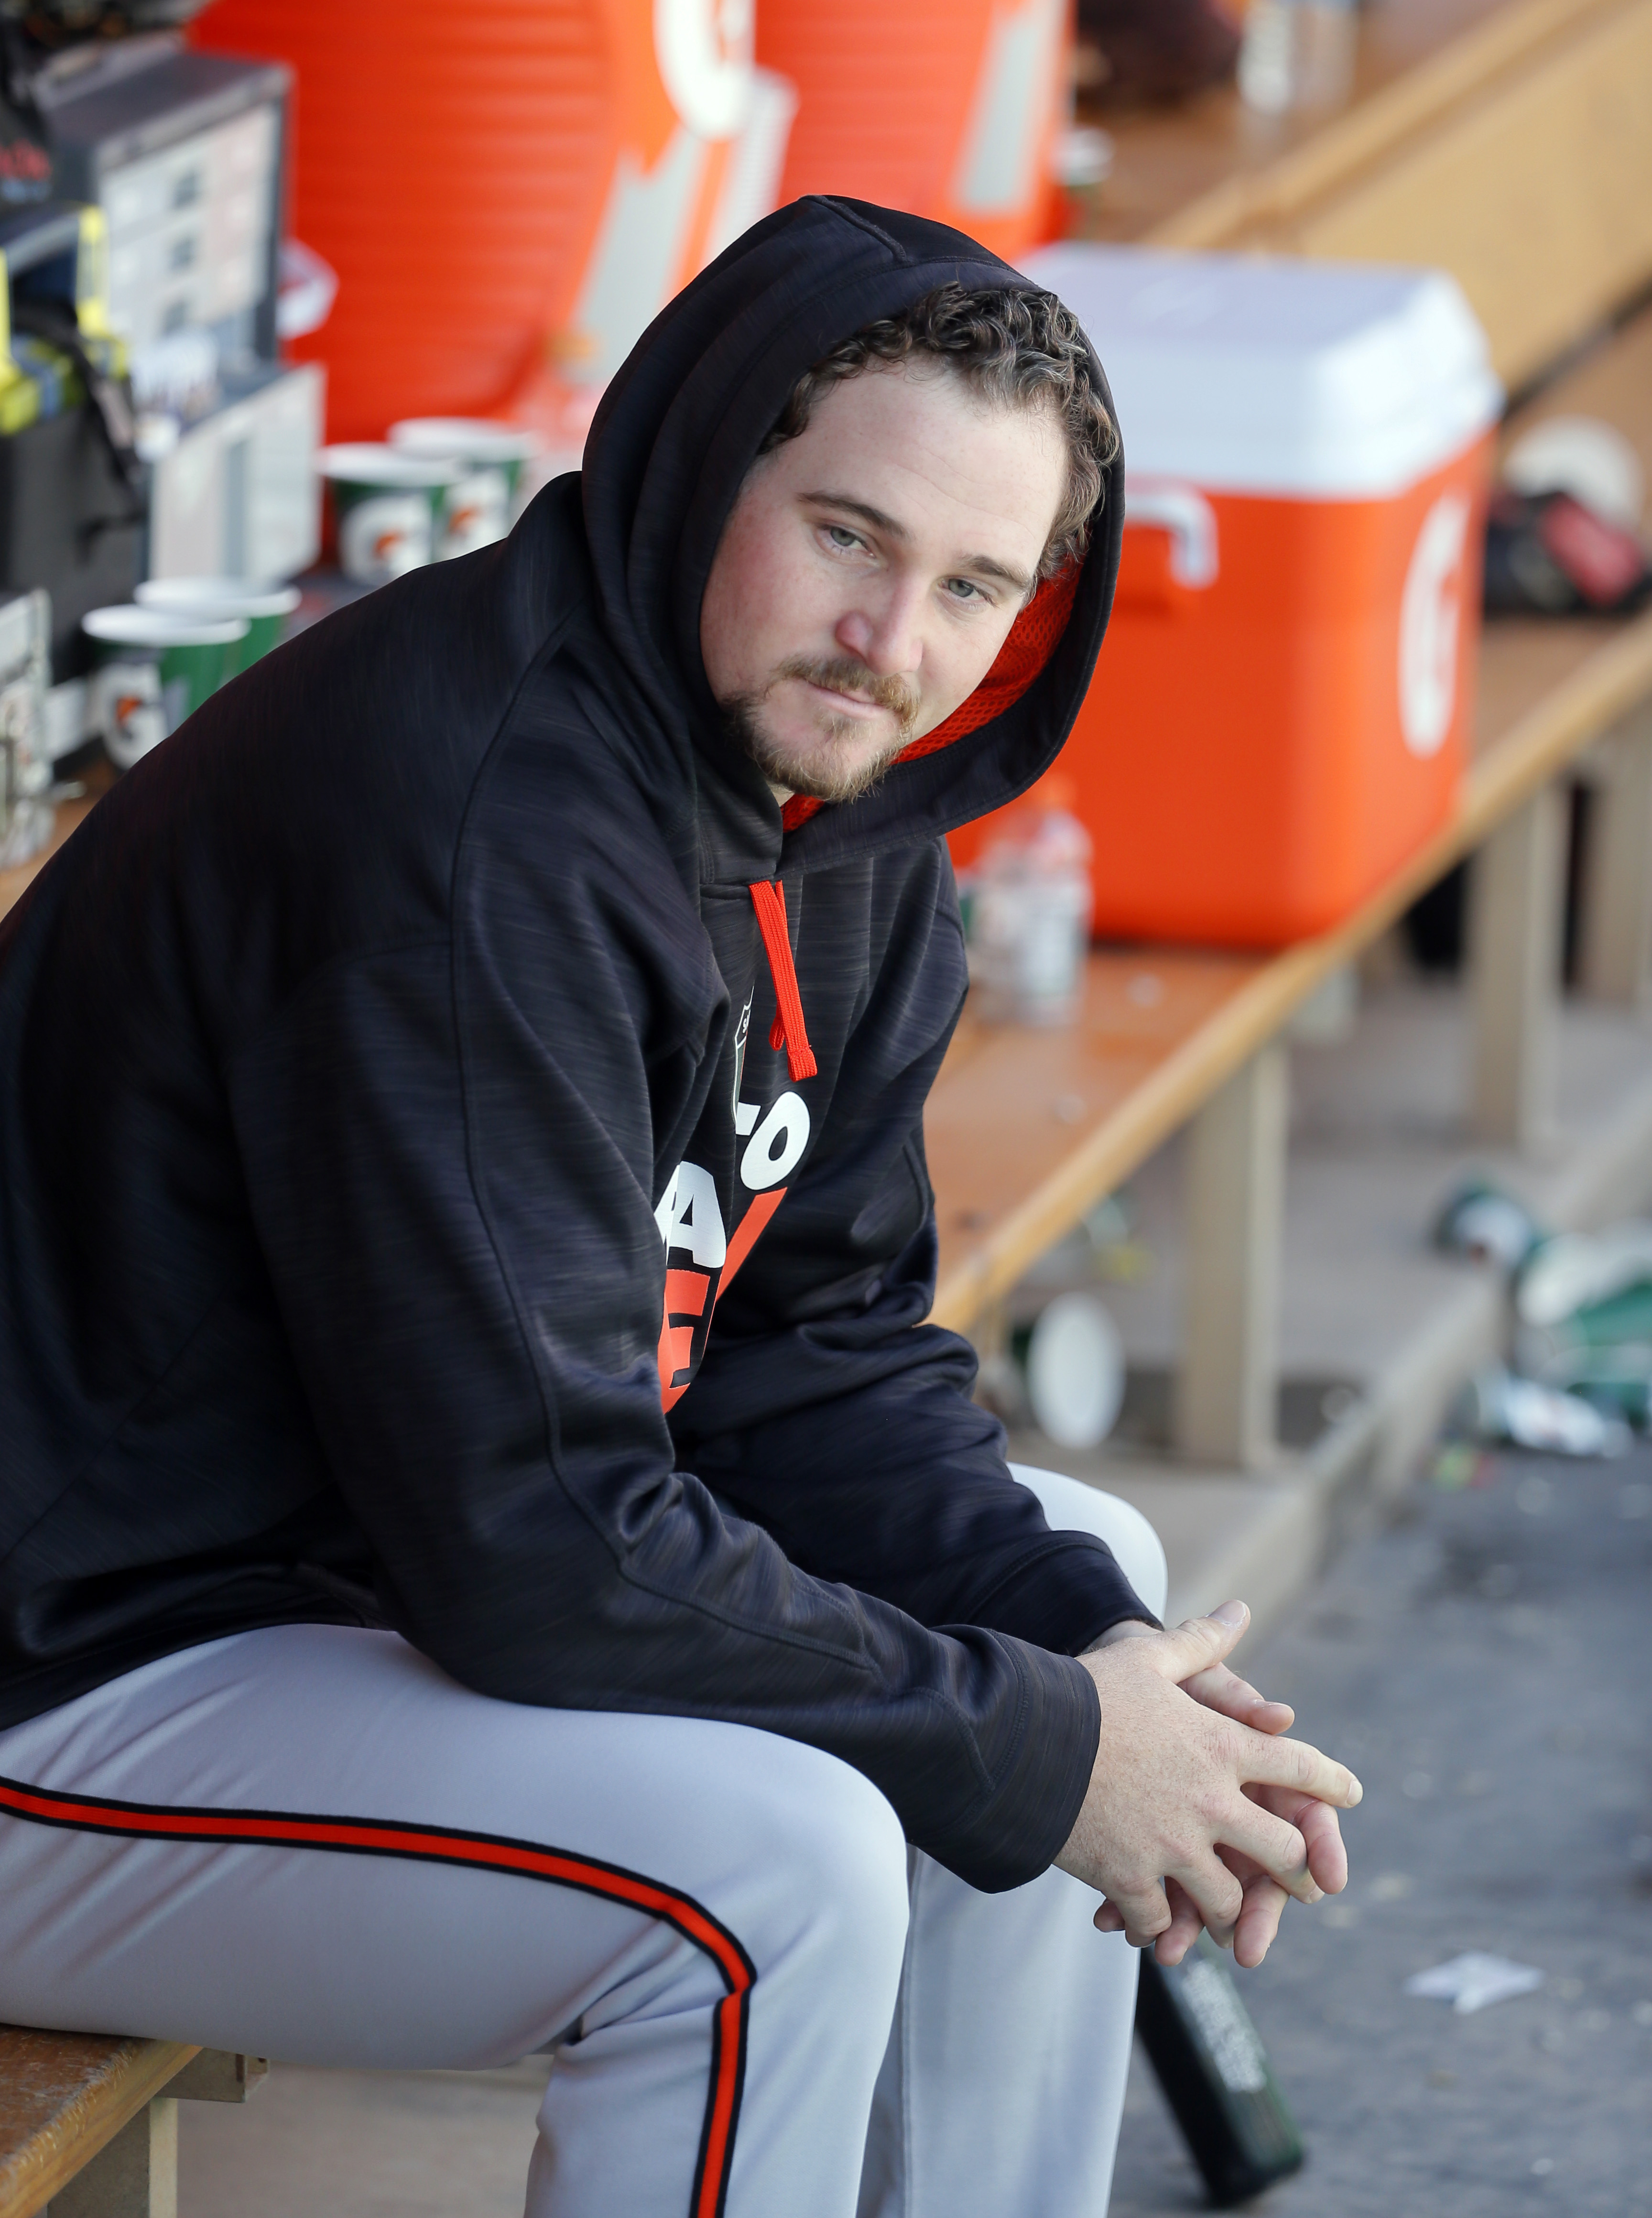 Baltimore Orioles starting pitcher Mike Wright sits in the dugout in the first inning of a spring training baseball game against the Minnesota Twins, Tuesday, March 22, 2016, in Fort Myers, Fla. (AP Photo/Tony Gutierrez)